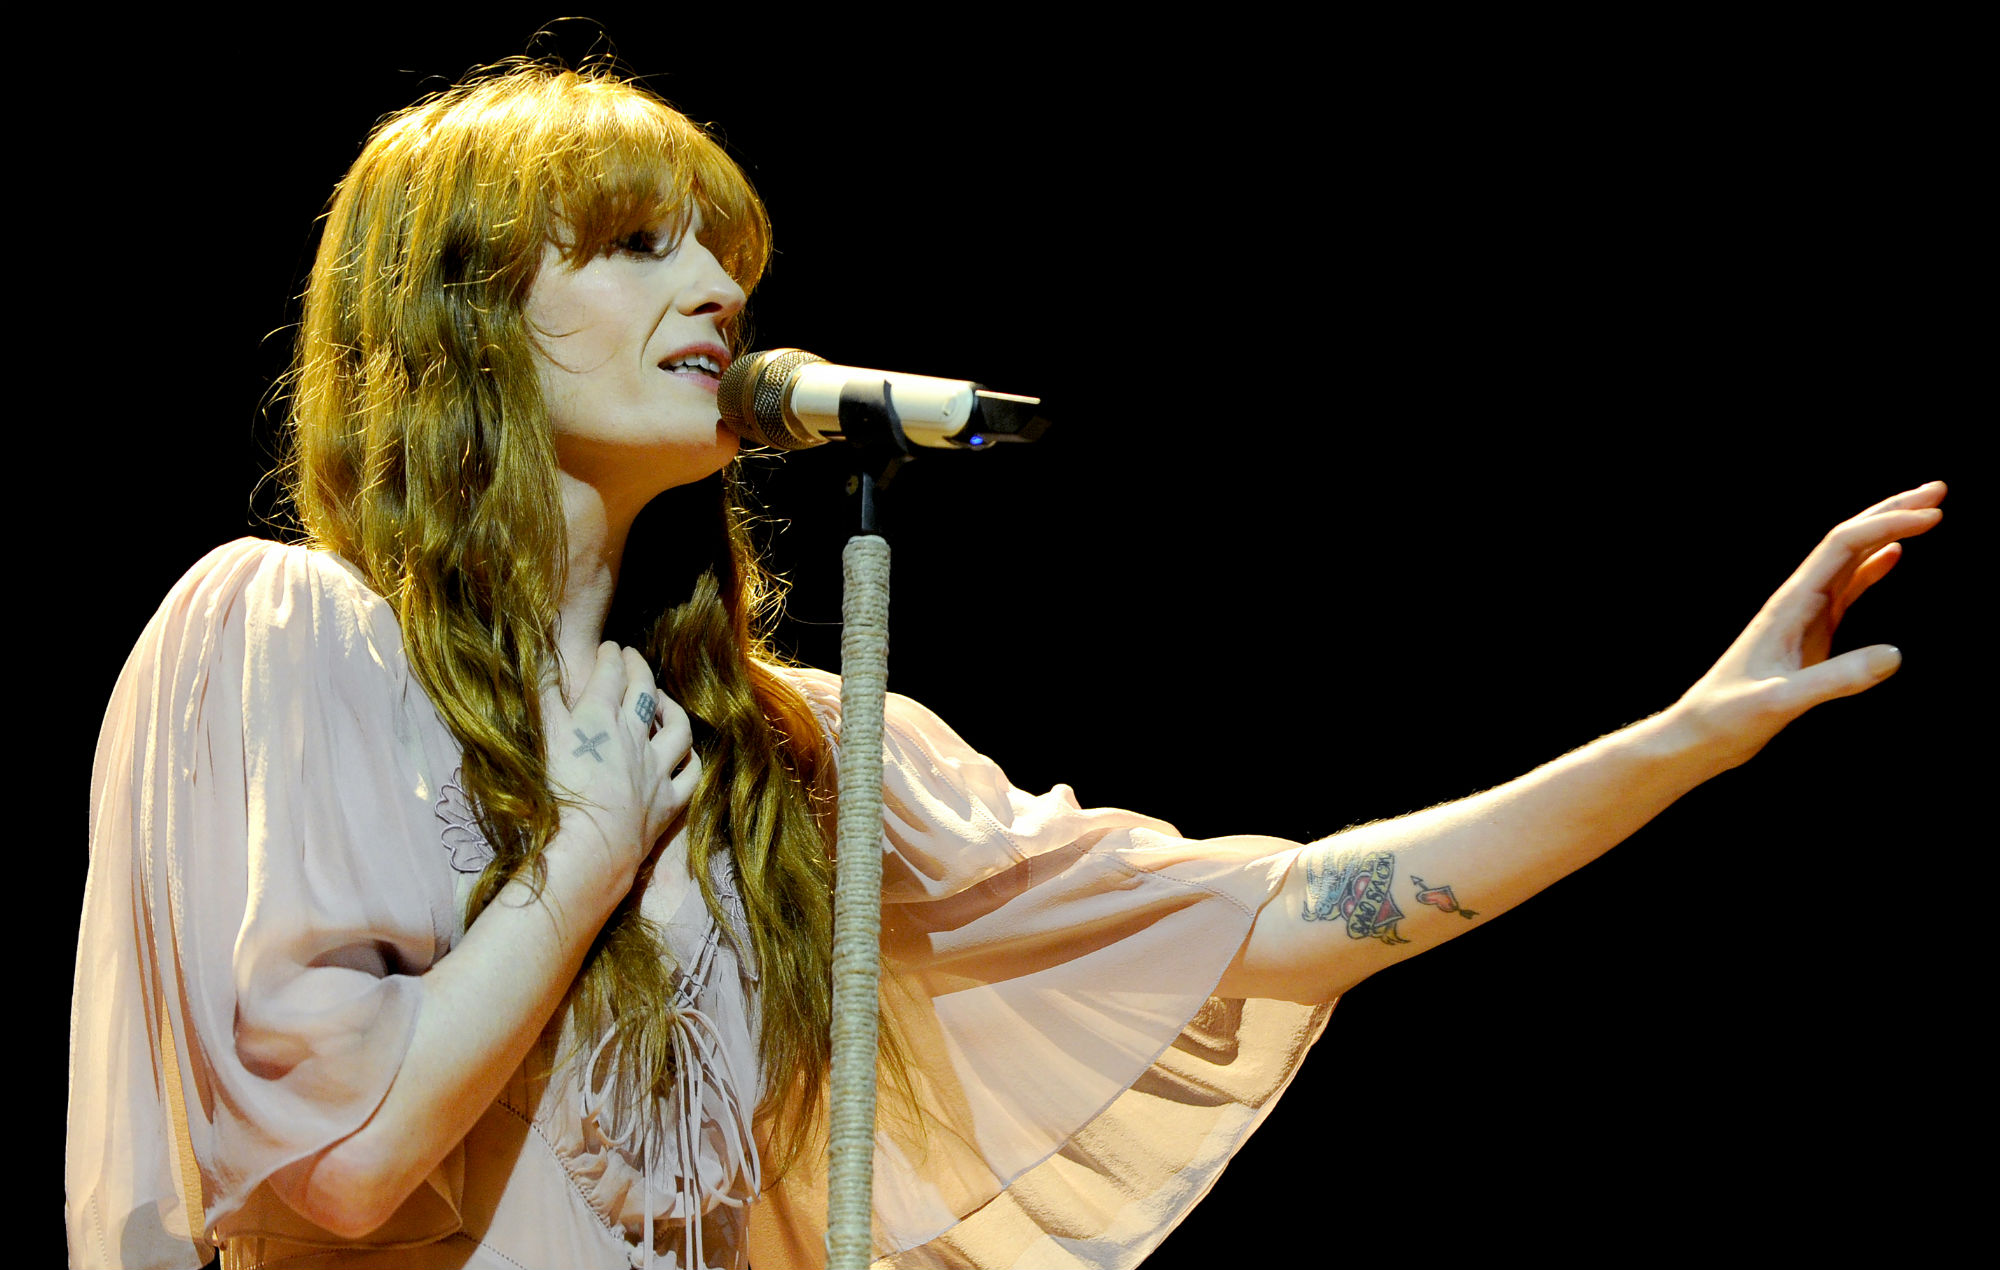 NME Festival blog: Florence + The Machine to headline Boardmasters 2019 – Giggs, Franz Ferdinand, Jorja Smith also on line up